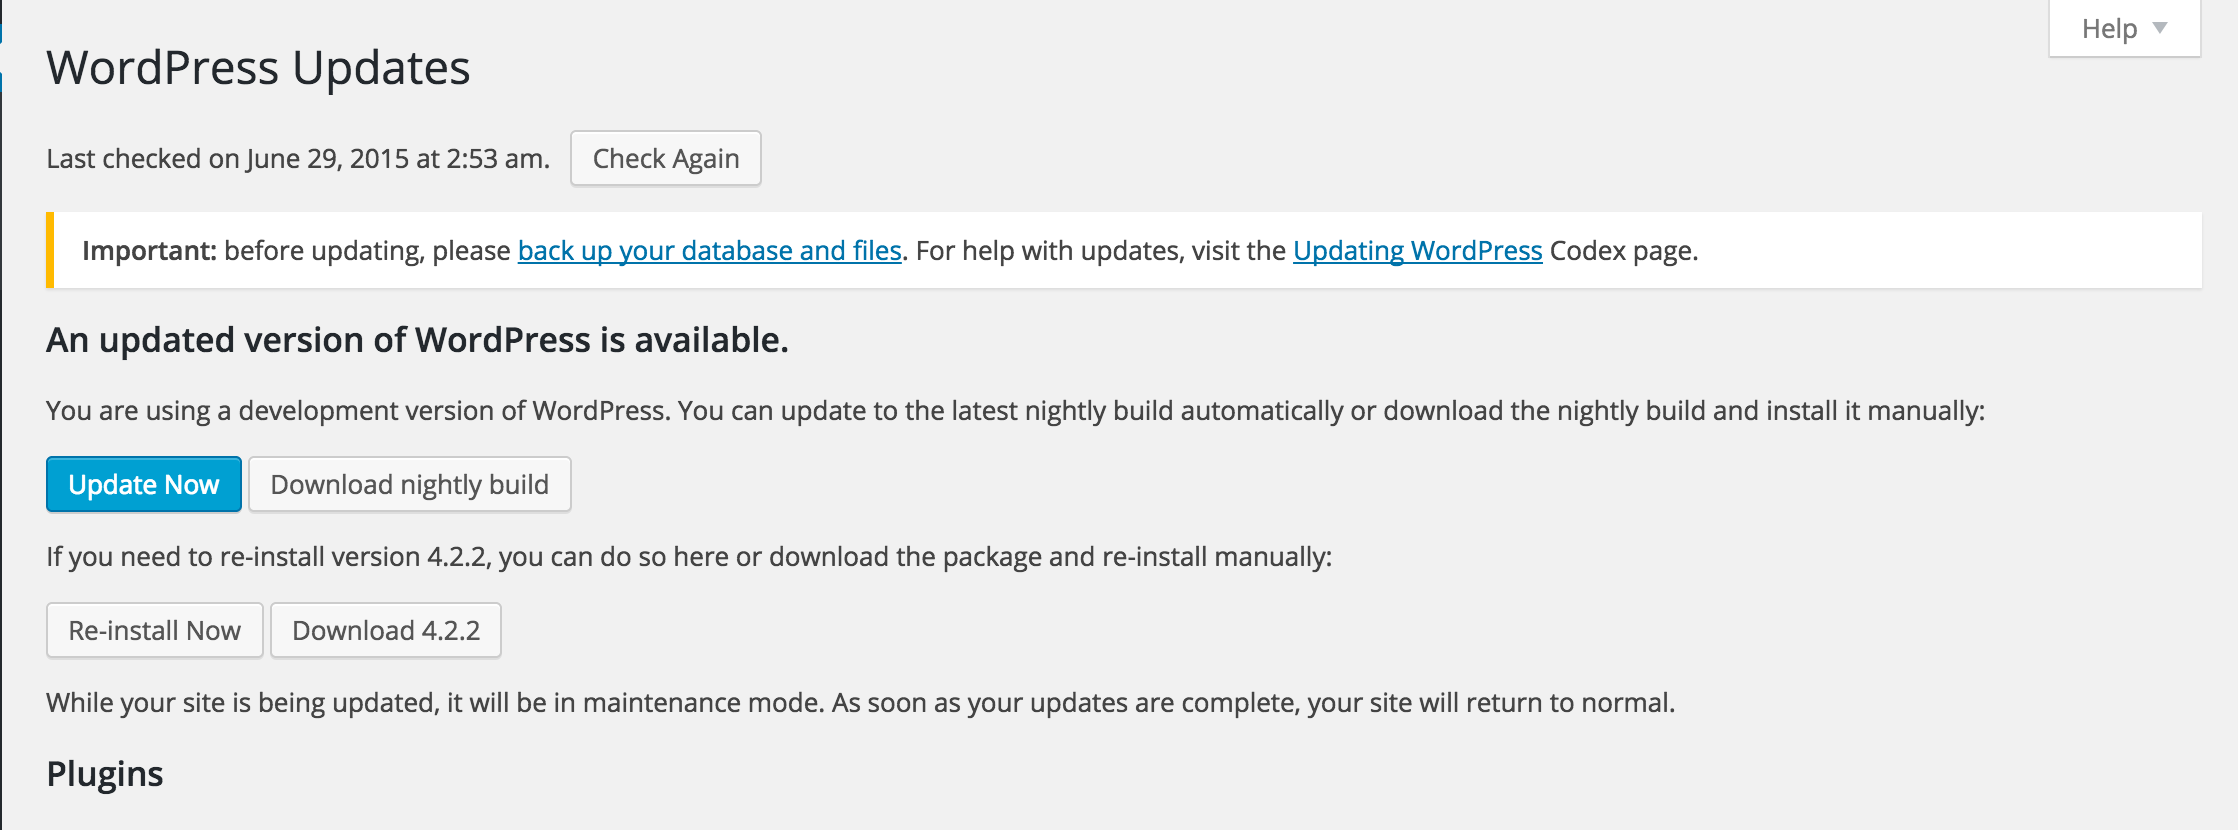 Go to handbook testing beta to see how to download WordPress Beta version